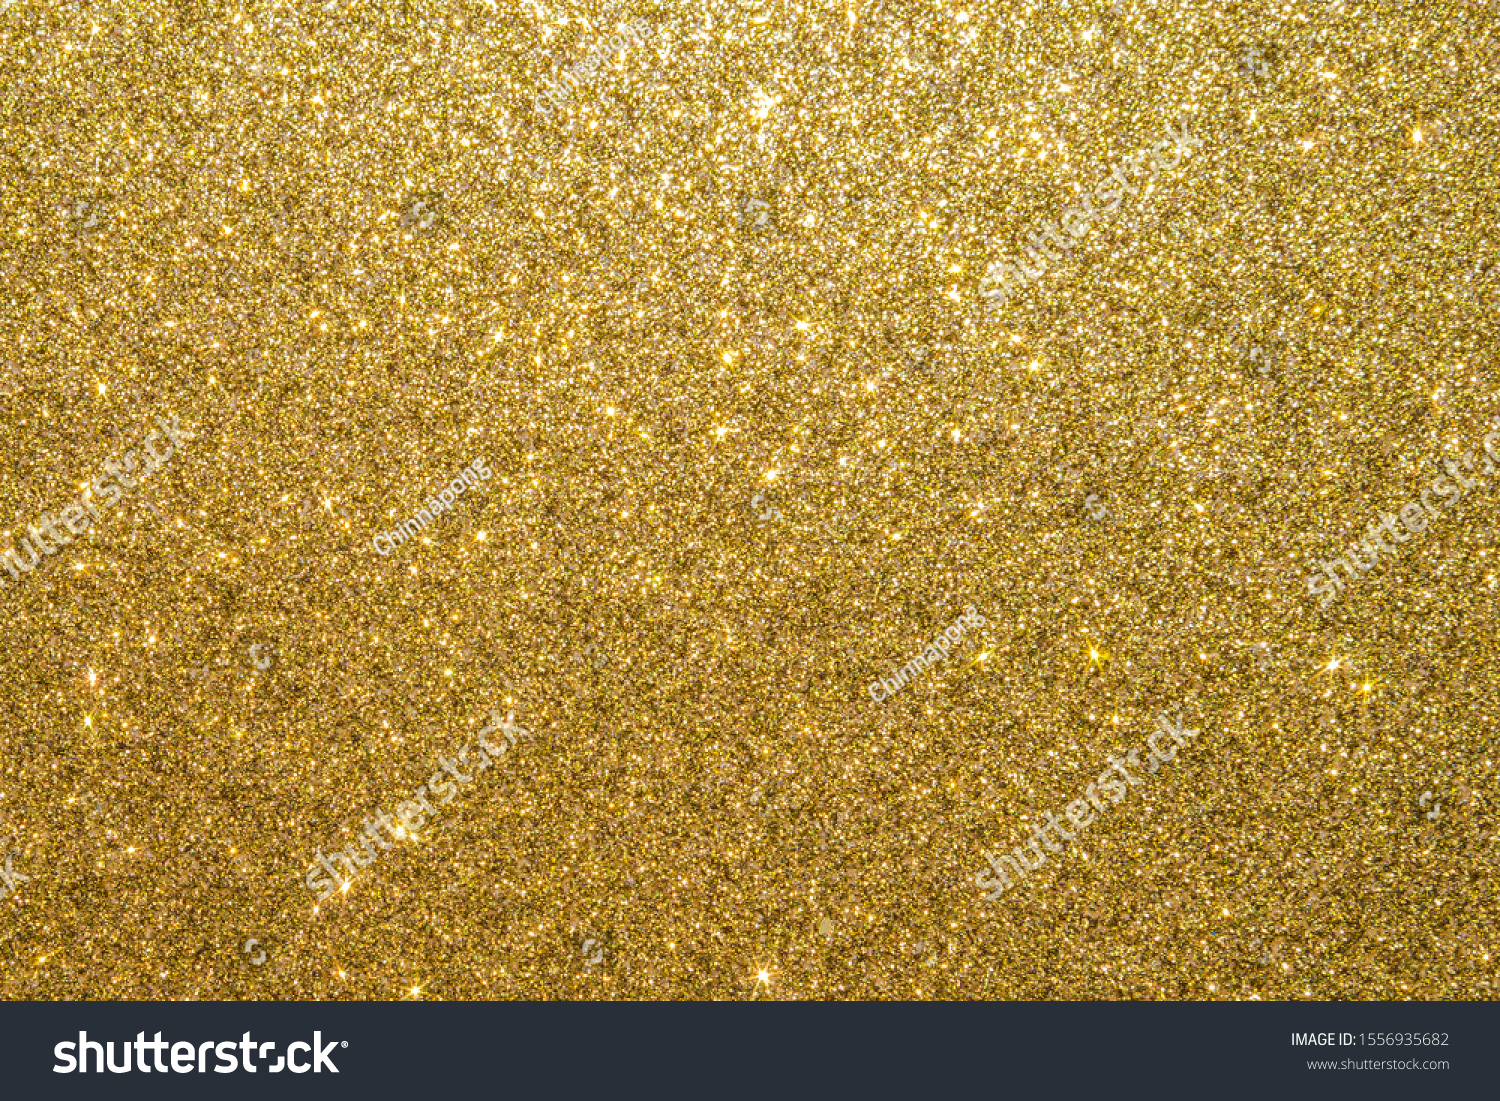 Gold glitter texture background sparkling shiny wrapping paper for Christmas holiday seasonal wallpaper  decoration, greeting and wedding invitation card design element #1556935682